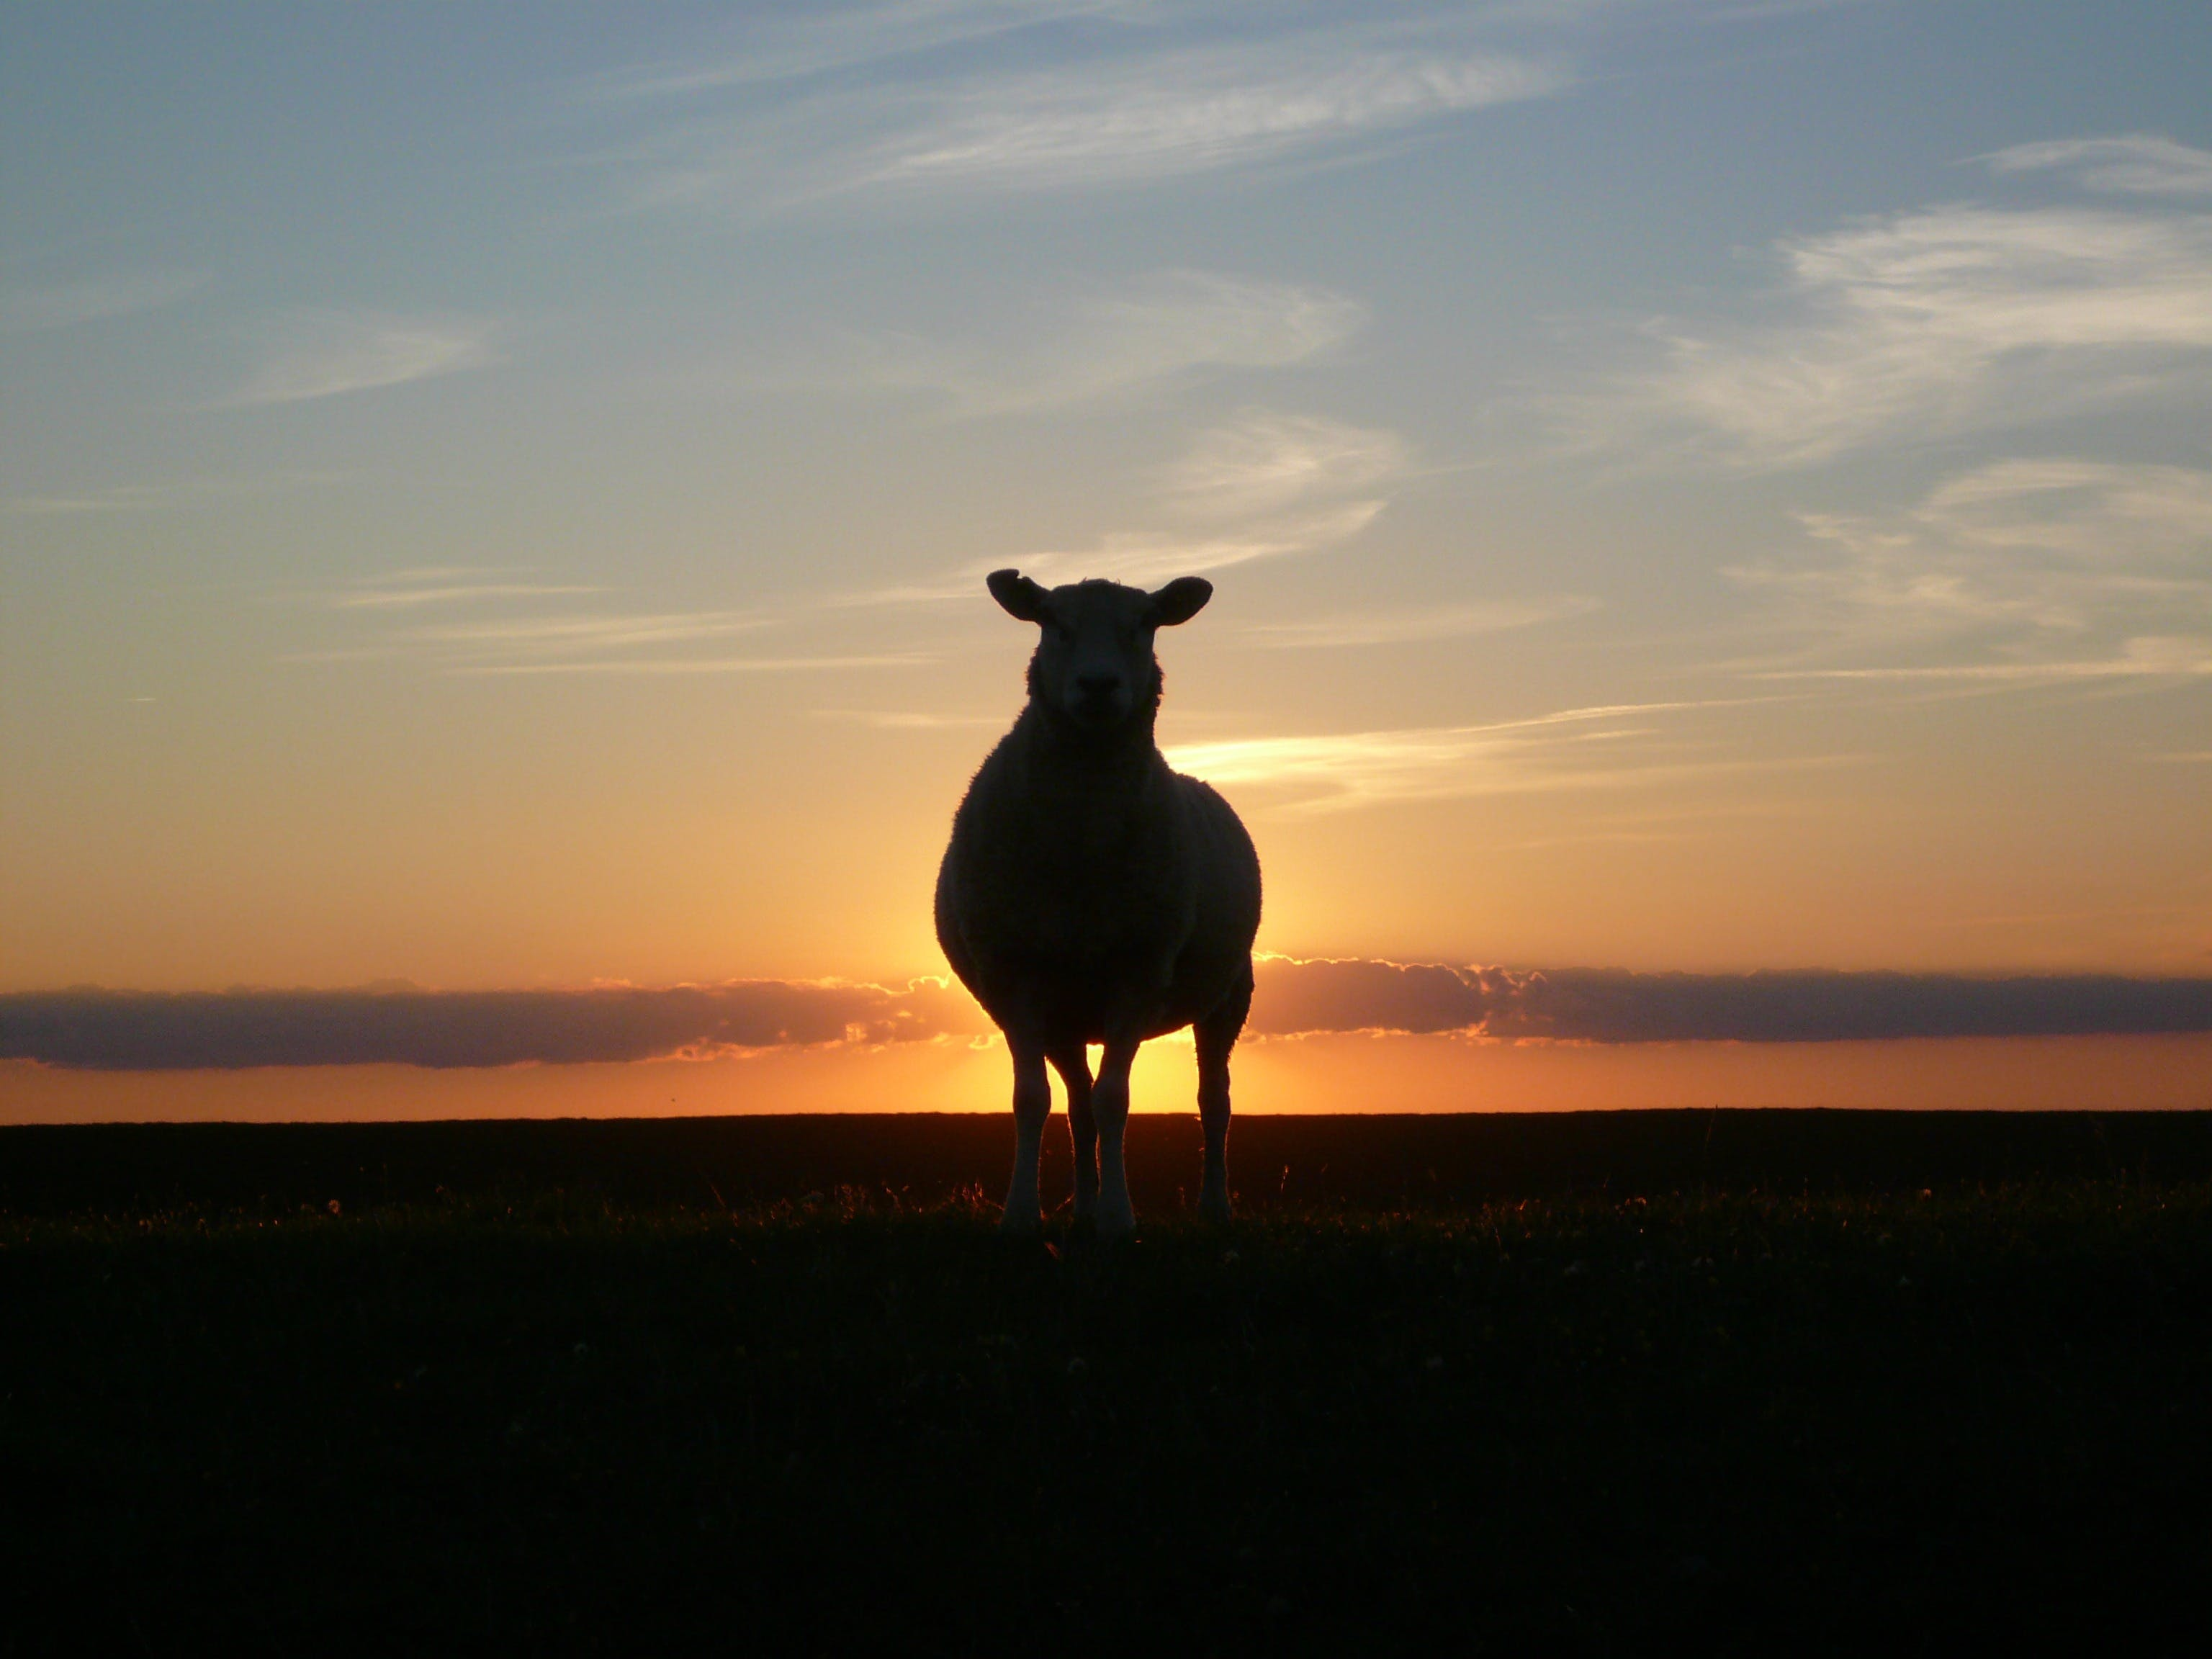 Silhouette of Cow during Sunset